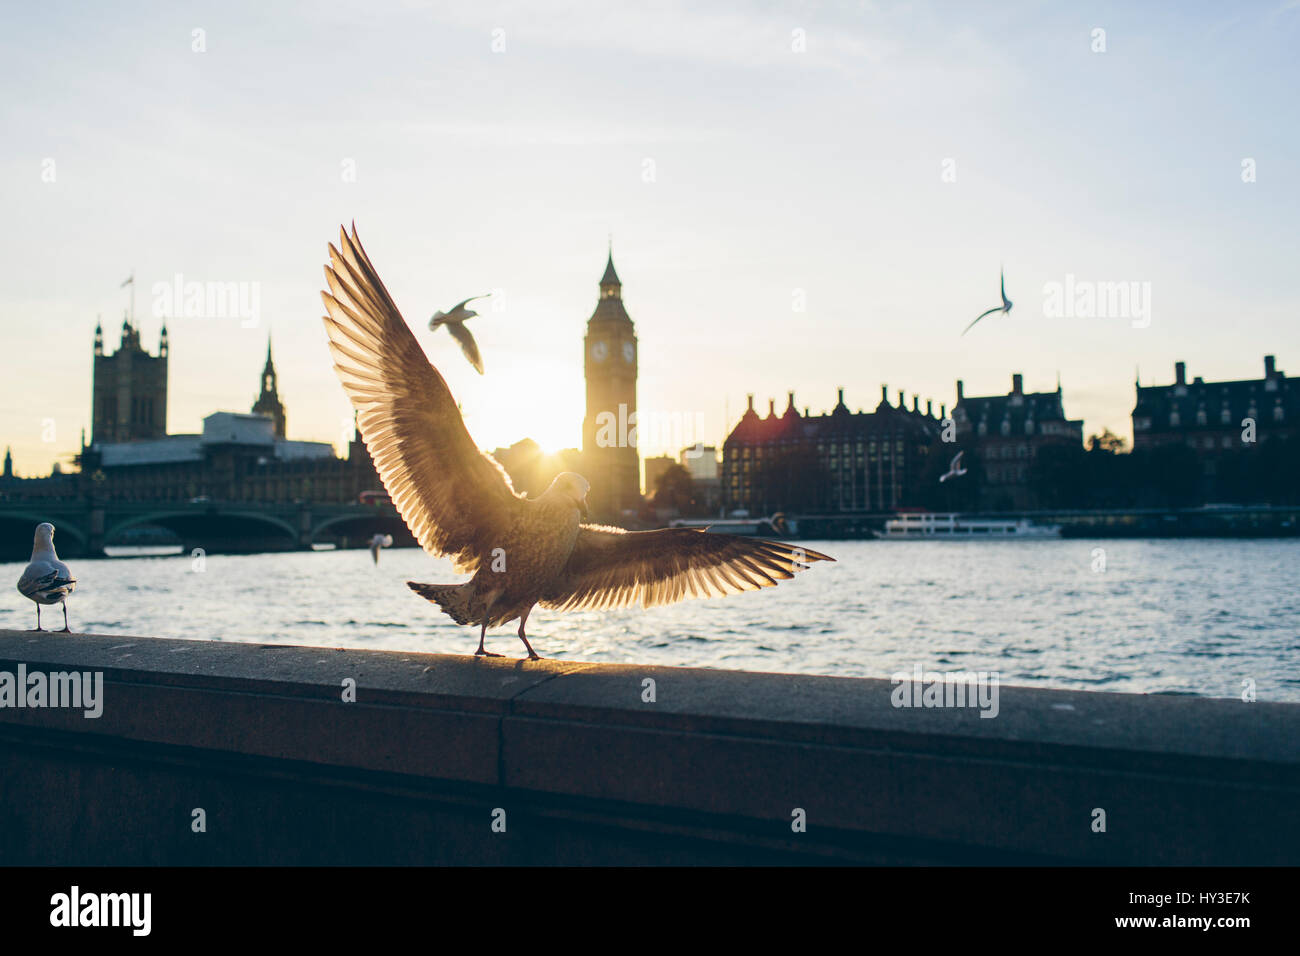 UK, England, London, Birds on bank of River Thames with Houses of Parliament and Westminster Bridge in background - Stock Image